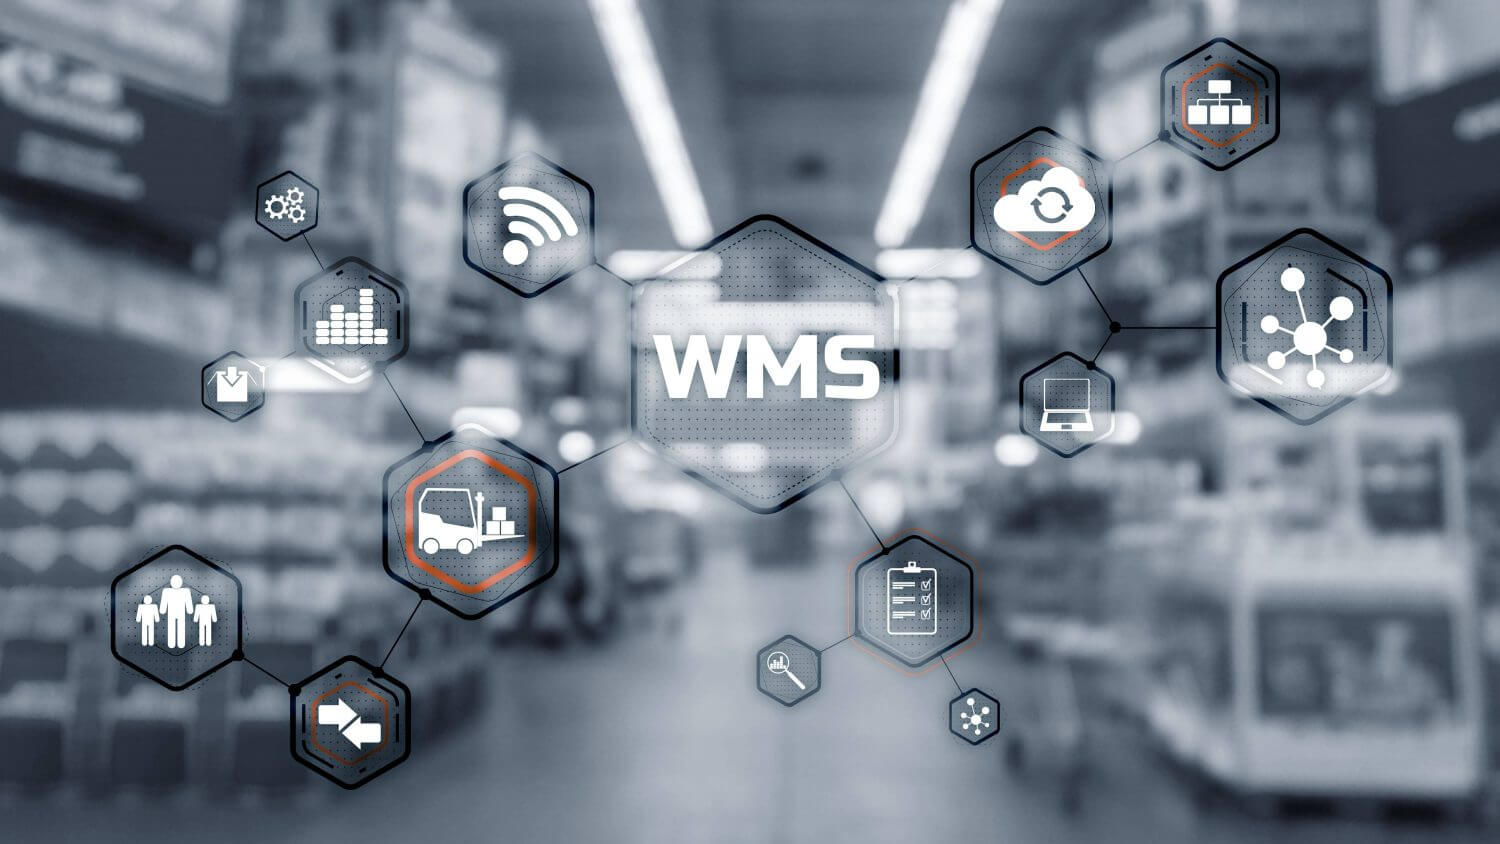 warehouse management system, technology that being used in logistics business to improve efficiency